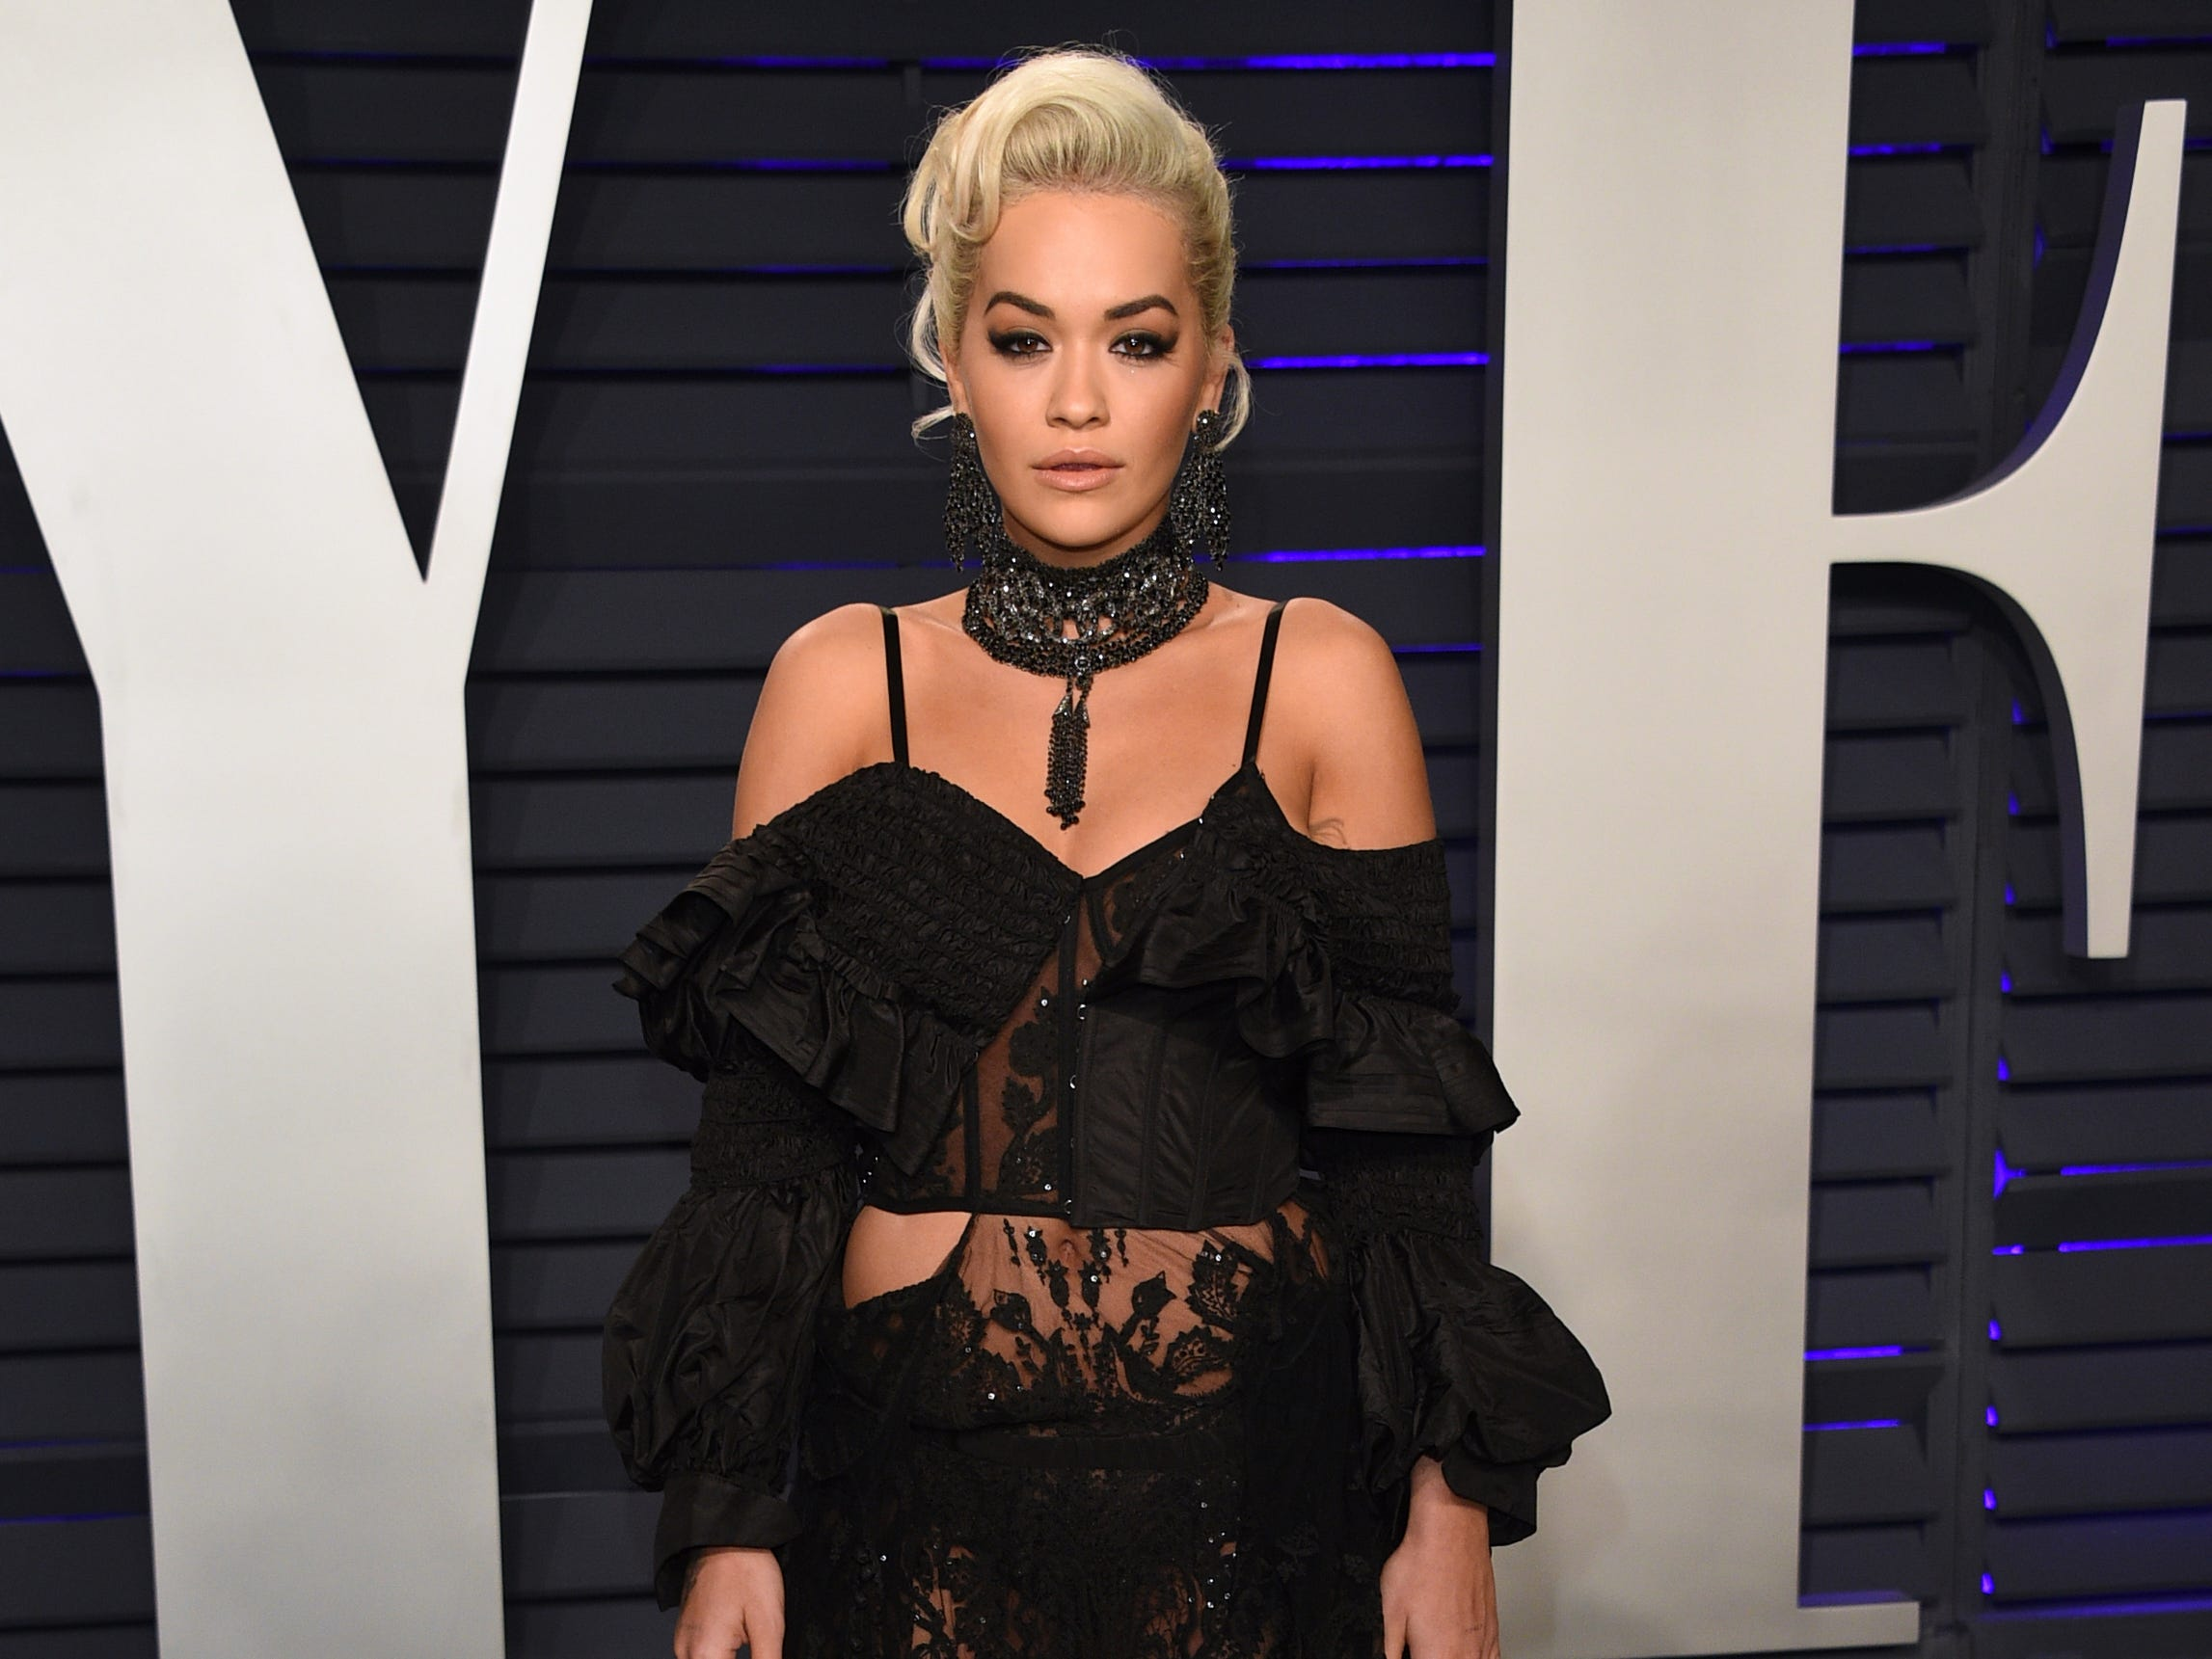 Rita Ora arrives at the Vanity Fair Oscar Party on Sunday, Feb. 24, 2019, in Beverly Hills, Calif. (Photo by Evan Agostini/Invision/AP) ORG XMIT: CATO325